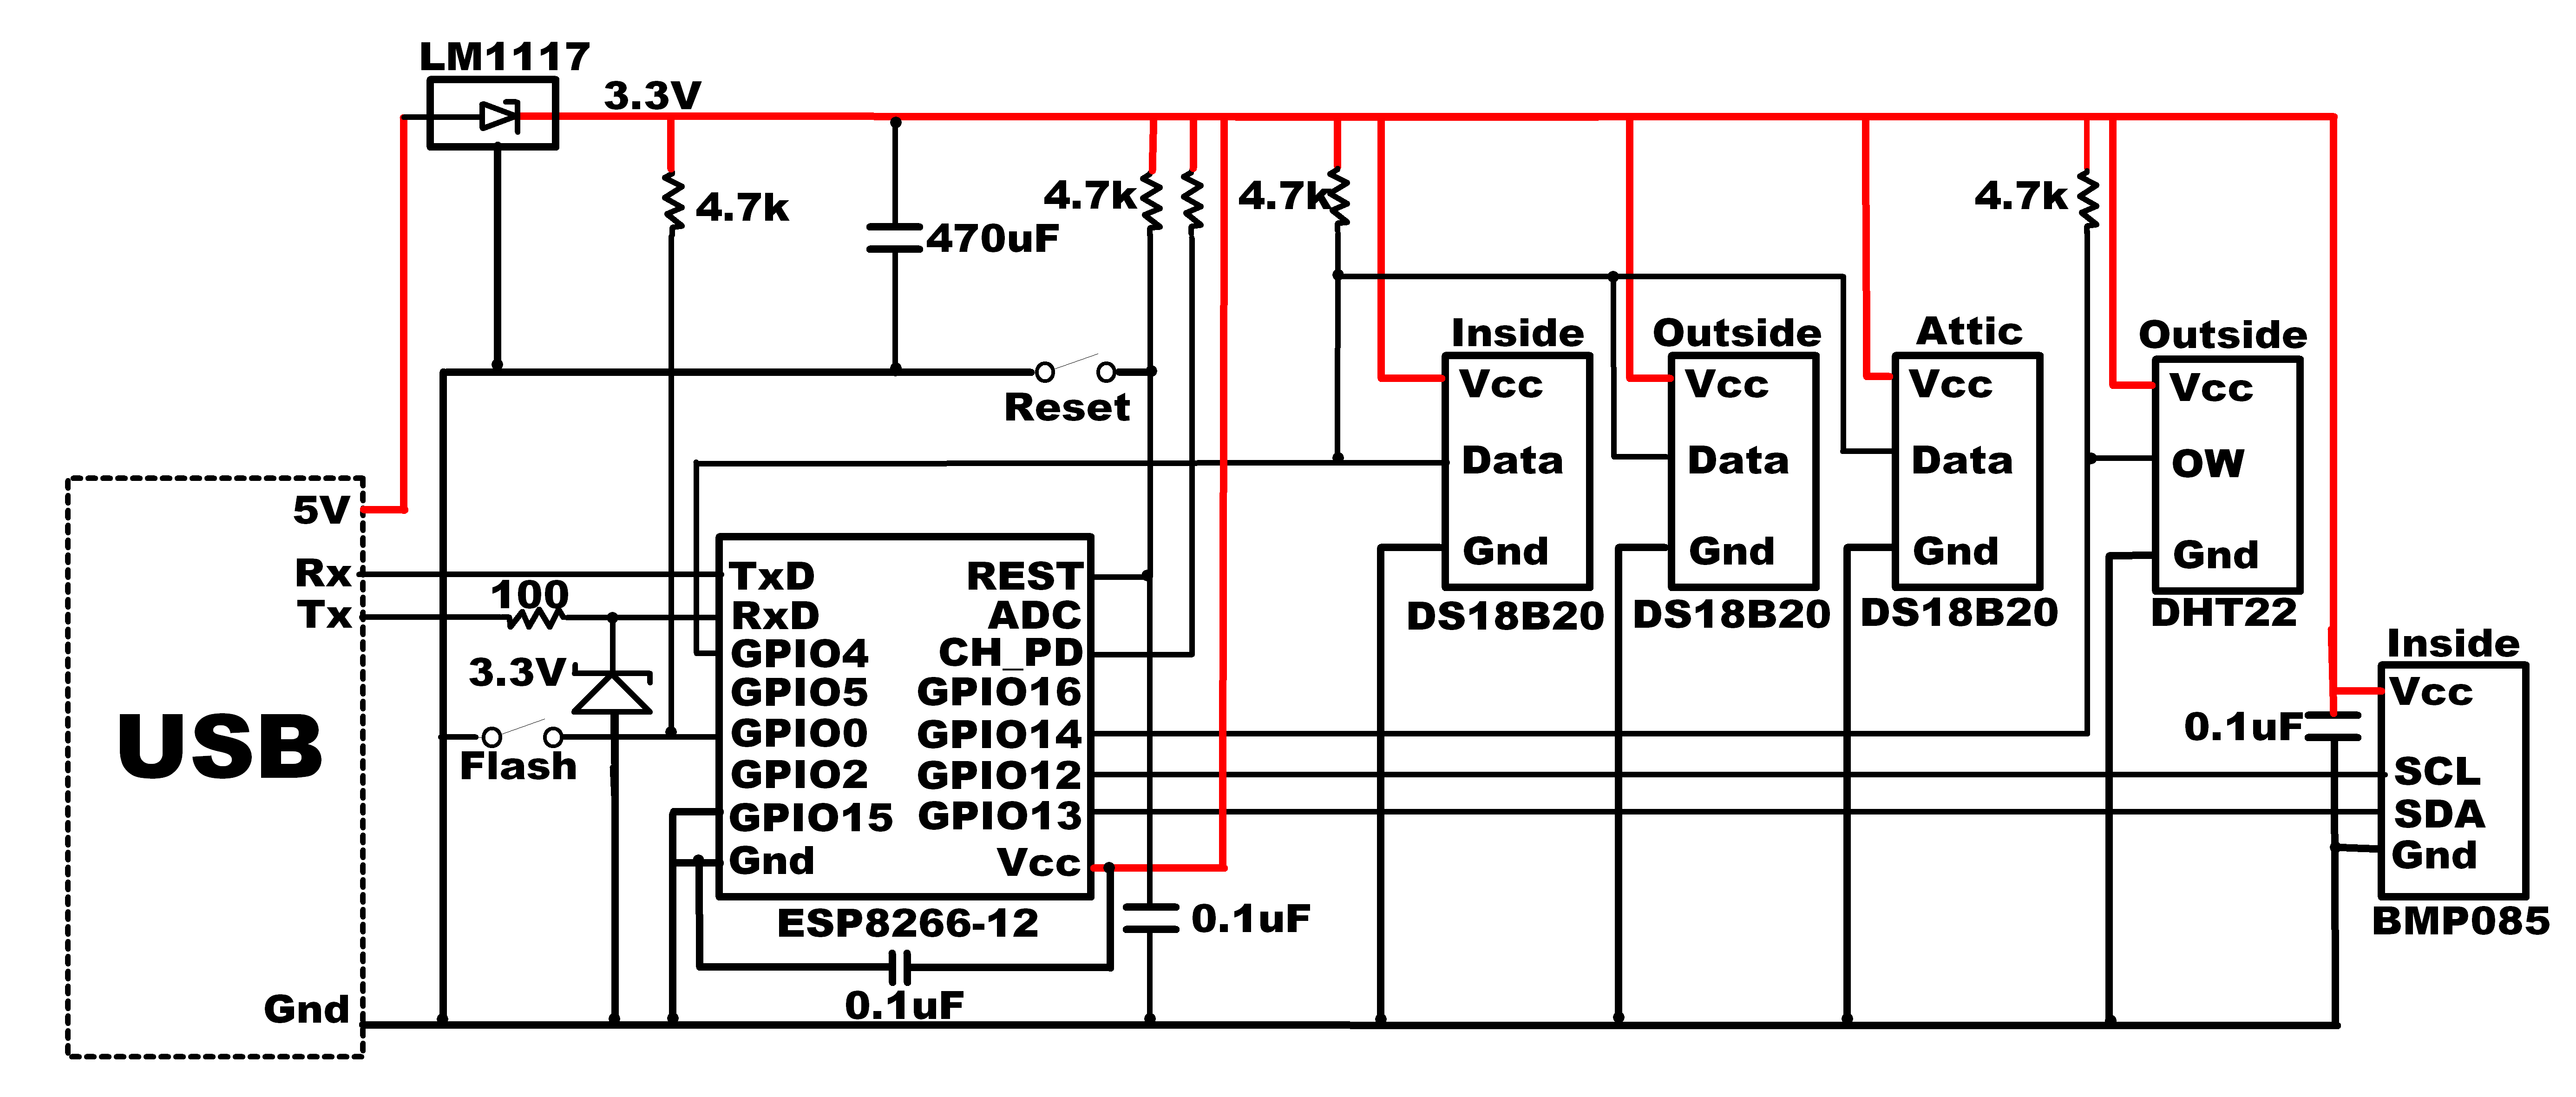 http://replace.org.ua/extensions/om_images/img/59e0fde507f65/ESP8266-schematic.png